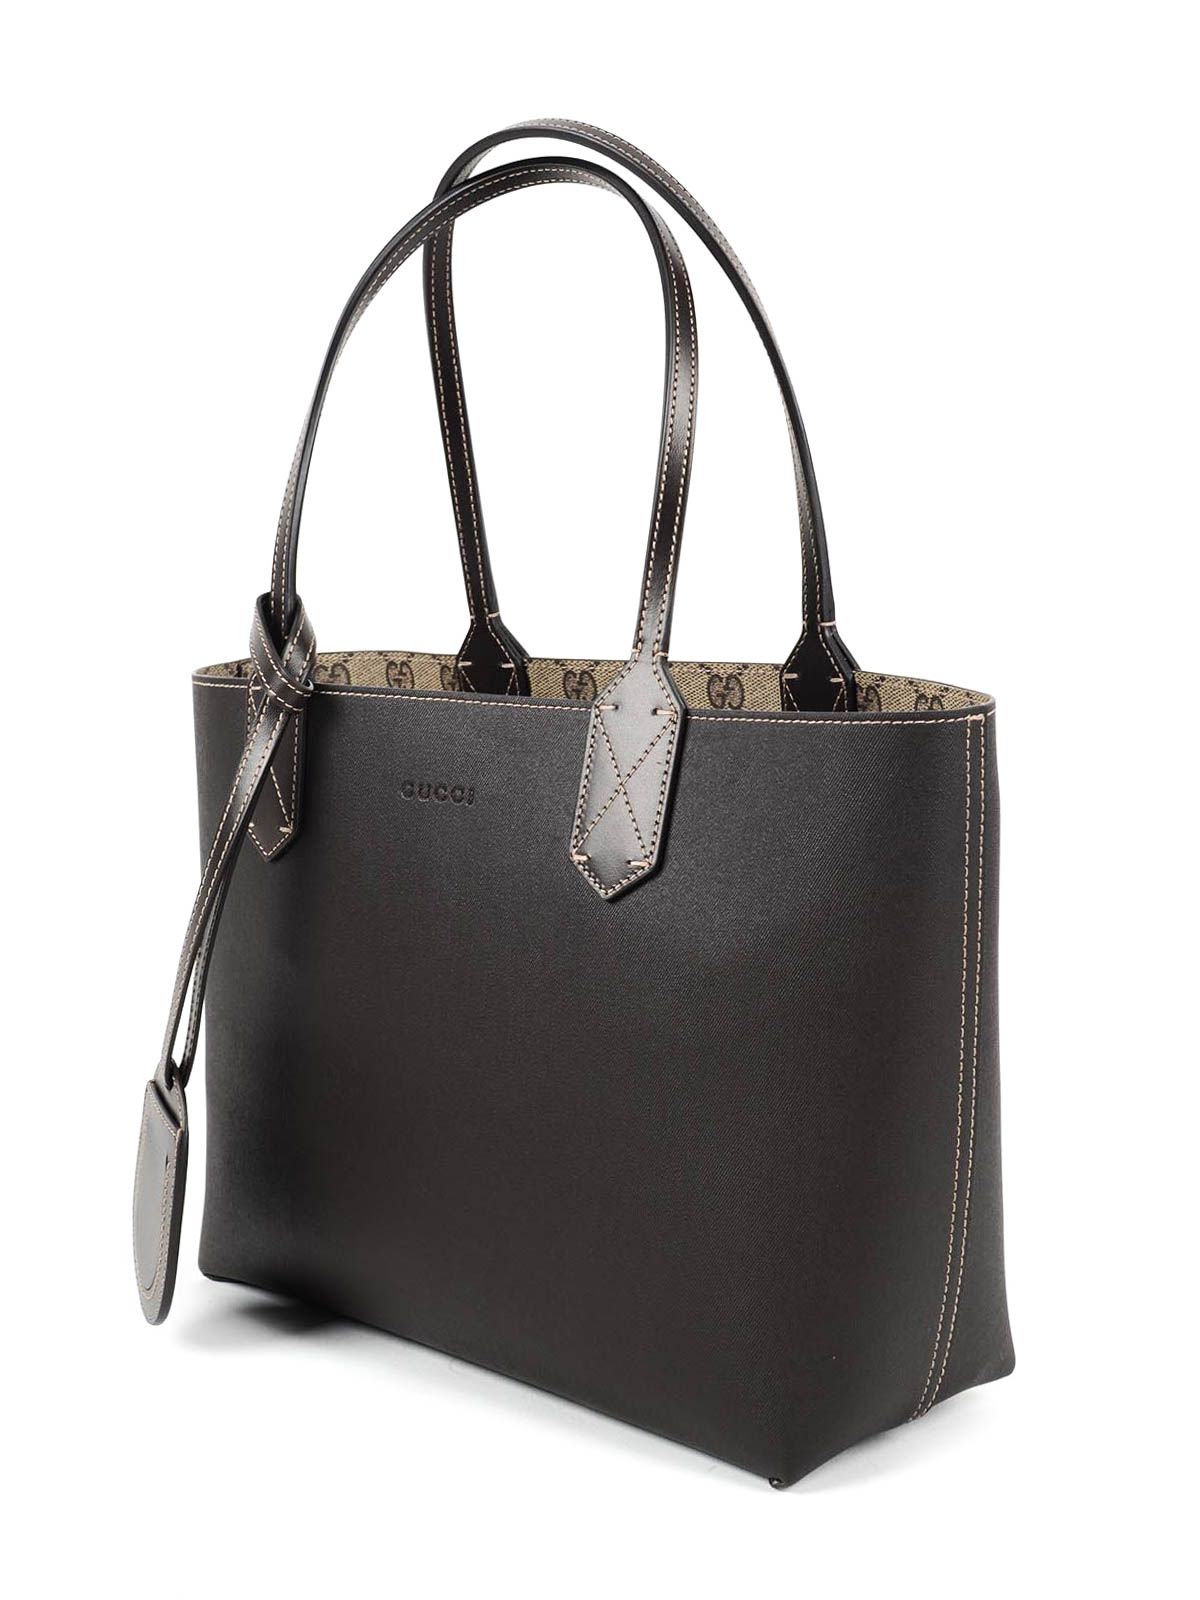 49602bc647 Gucci - Reversible GG leather tote - totes bags - 372613 A9810 9643